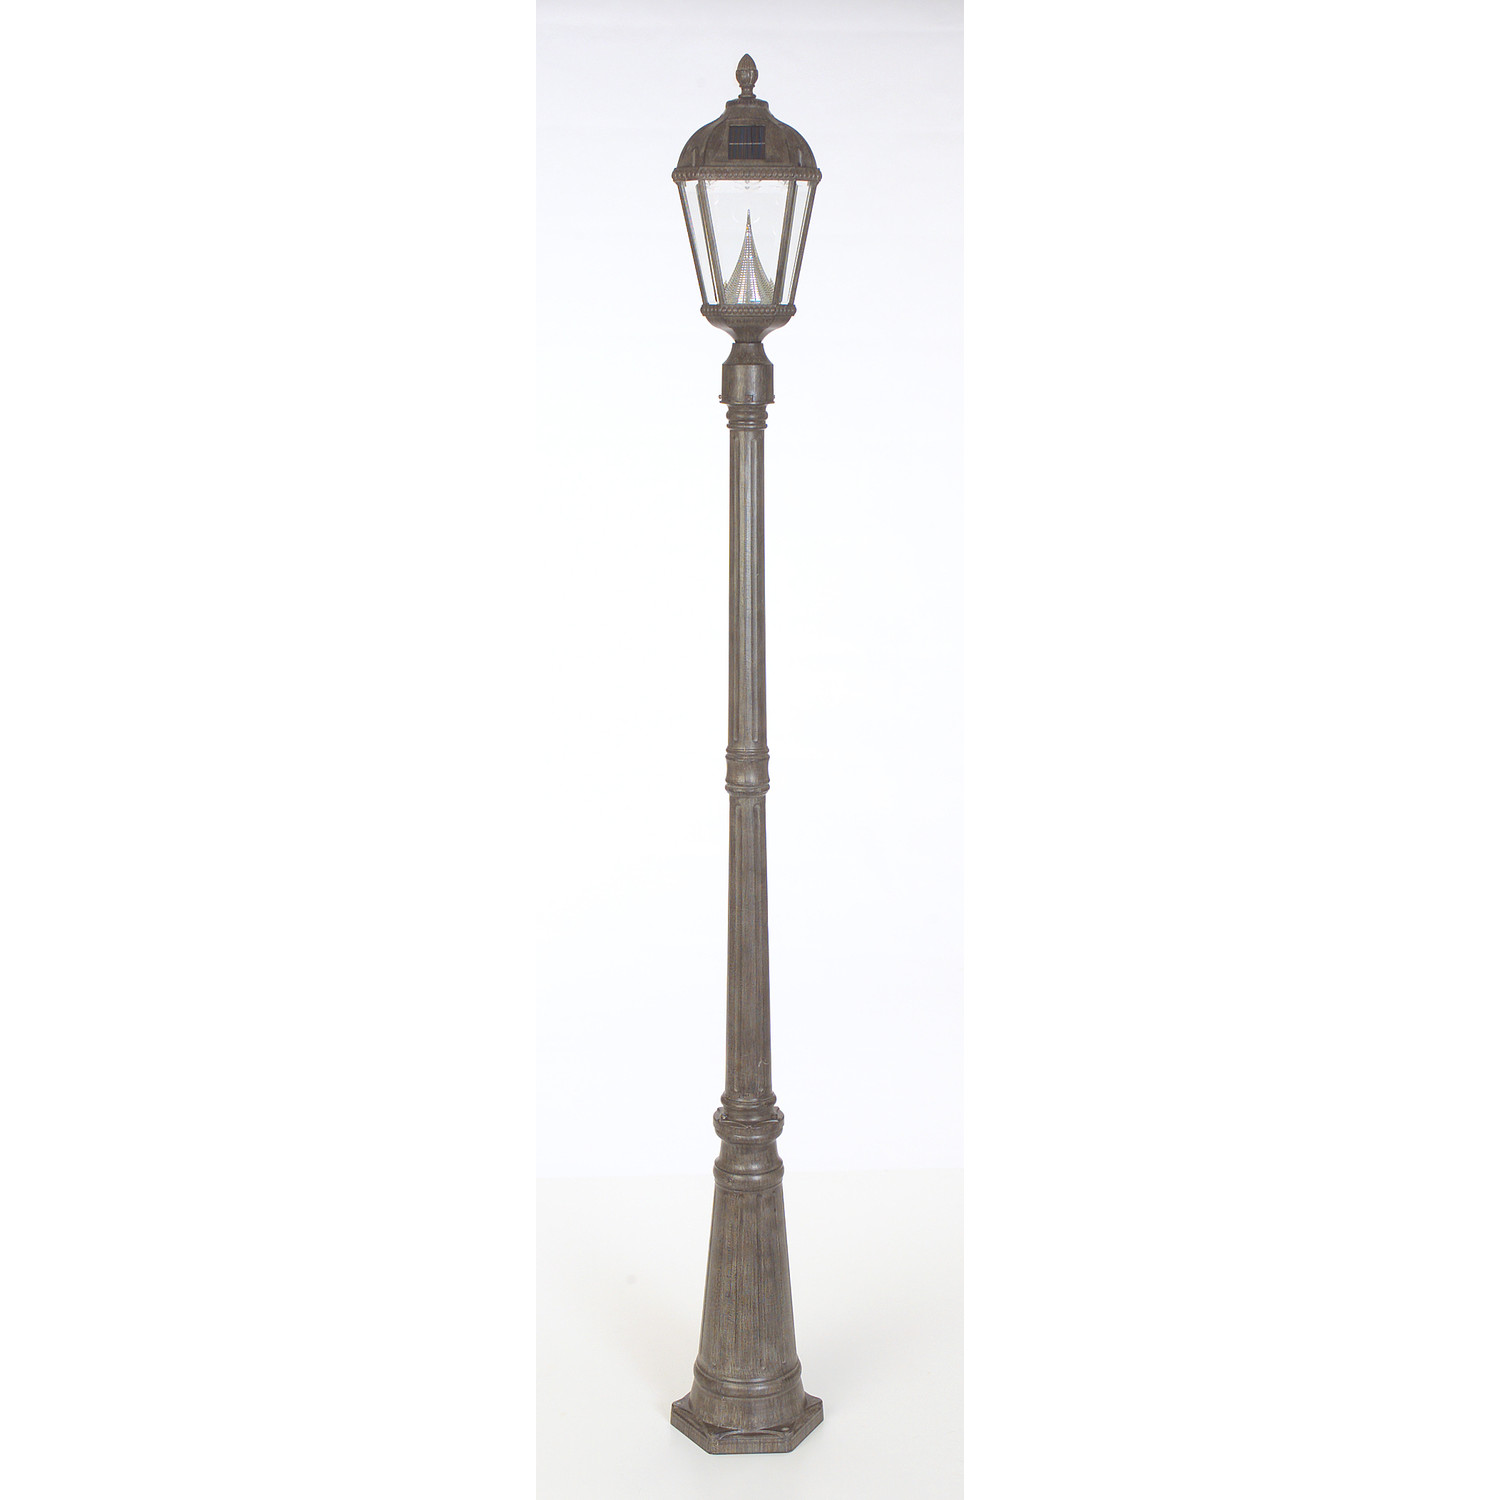 Royal Solar Lamp Post and Seven-LED Lantern